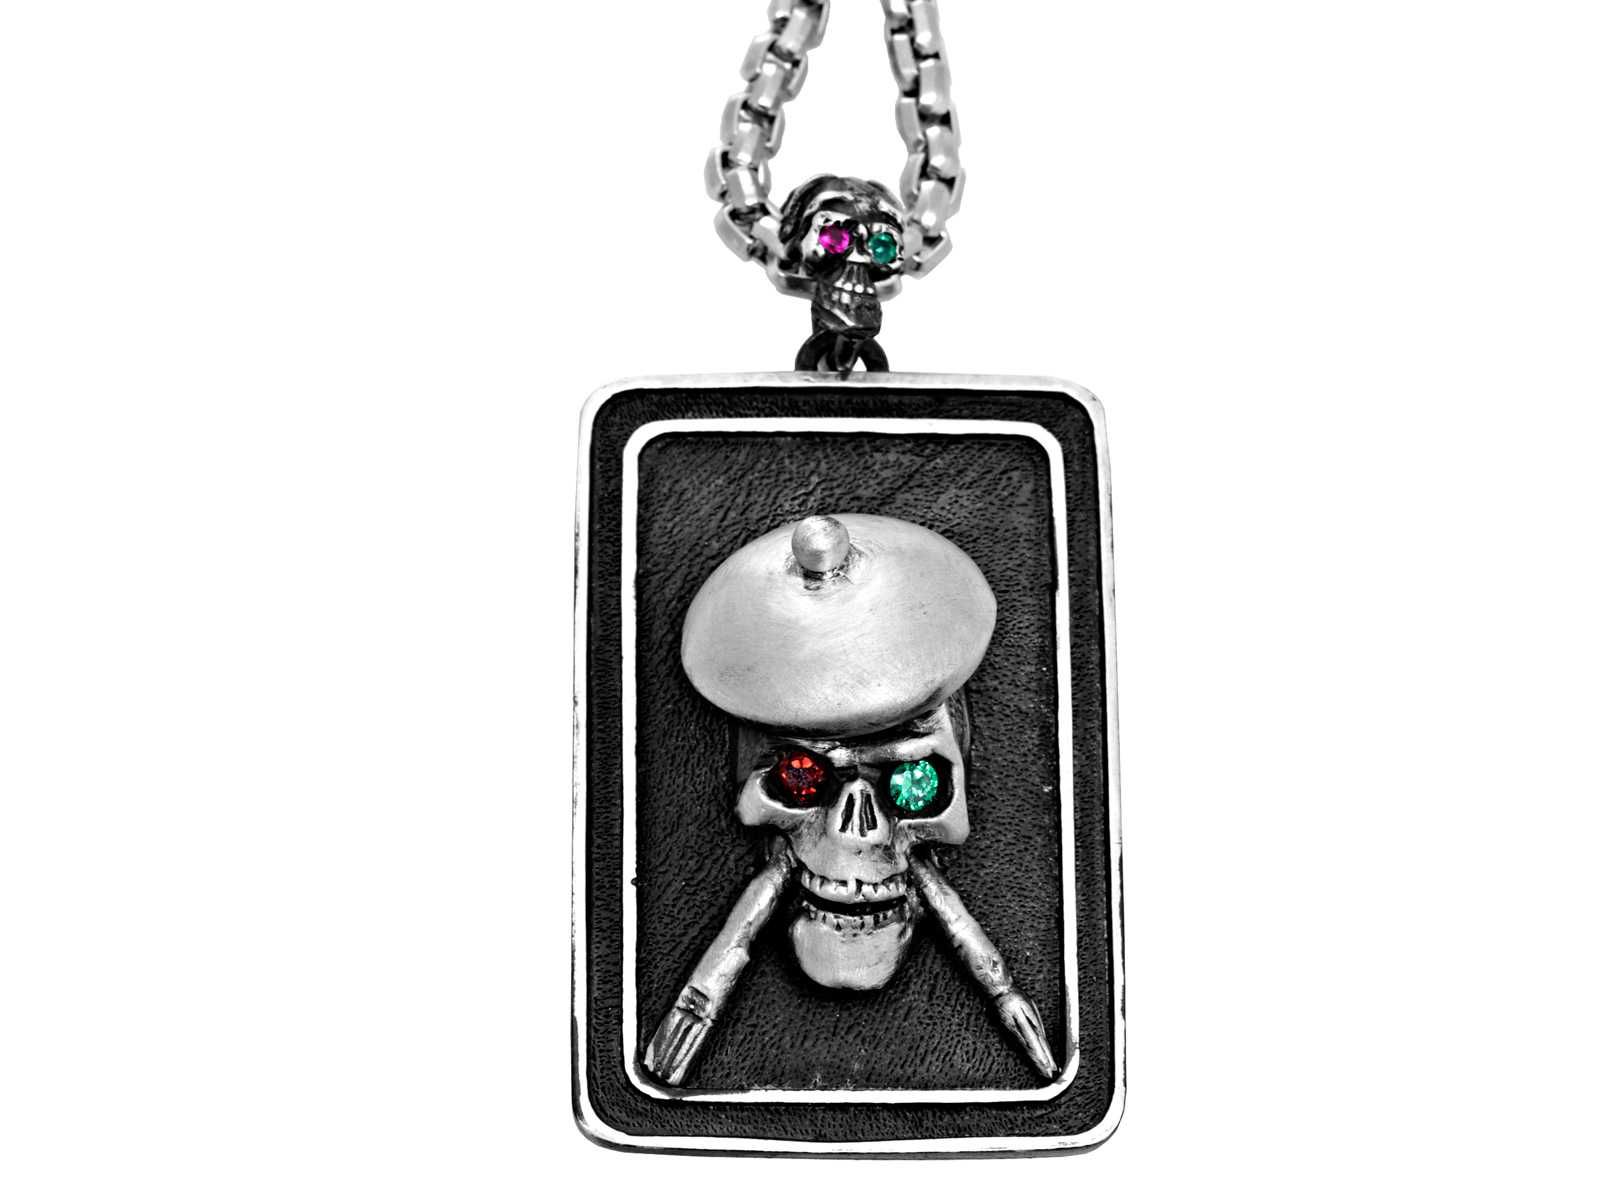 DT104-B The Artist Skull Dog Tag in Sterling Silver with Tsavorite and Ruby, designed by Steve Soffa